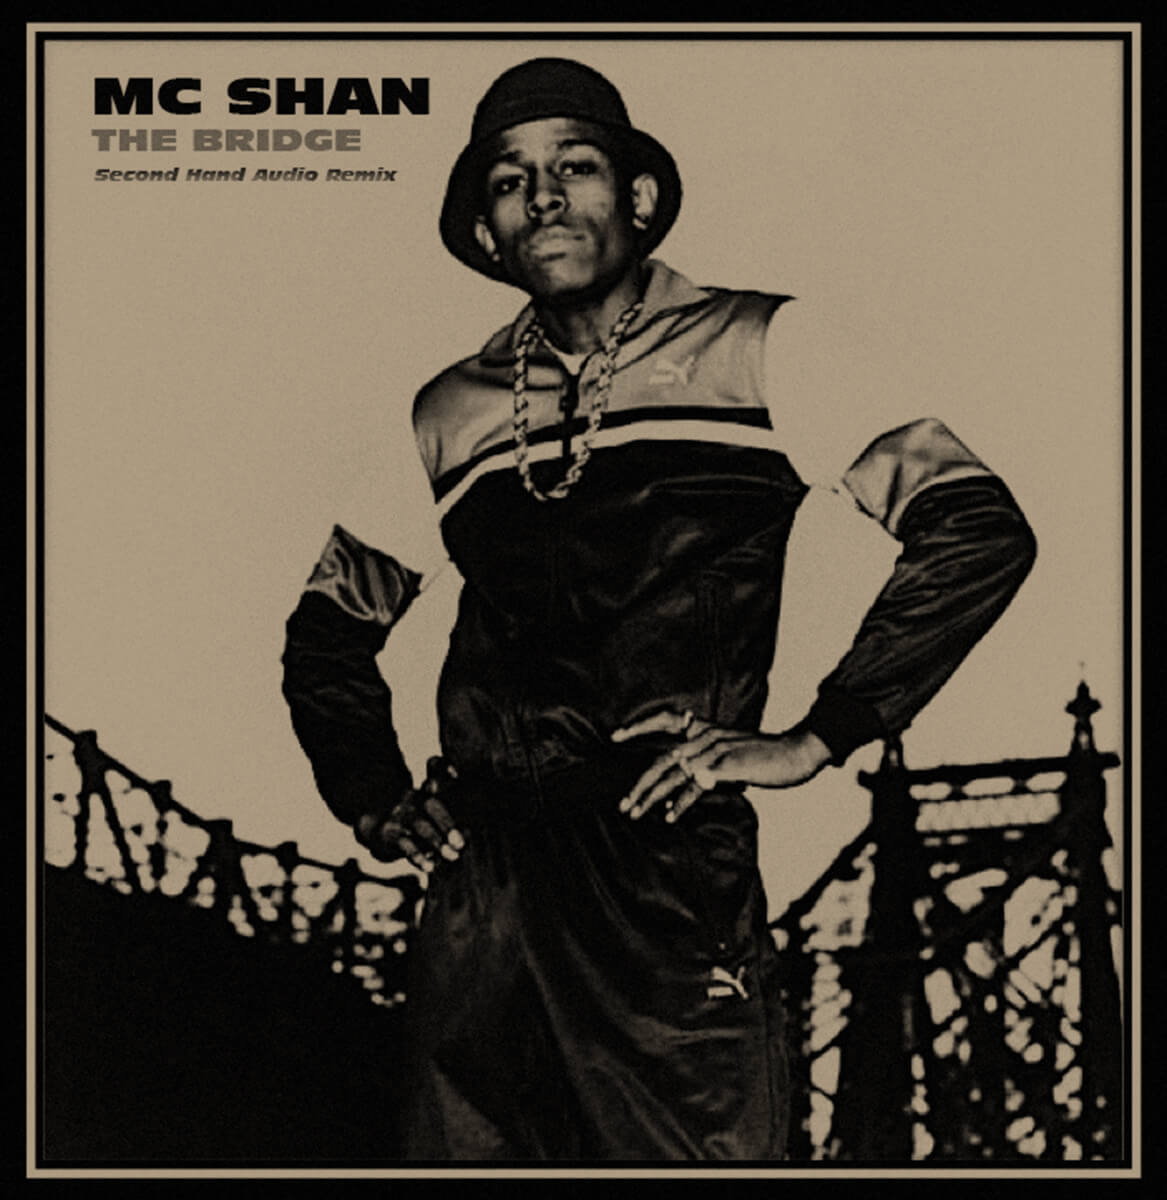 single women in mc shan Mc shan was born in queensbridge, queens, new york, and began his rap career quite auspiciously, with a major label single released under mca records in 1985 though the song was successful, he was subsequently released from the label.